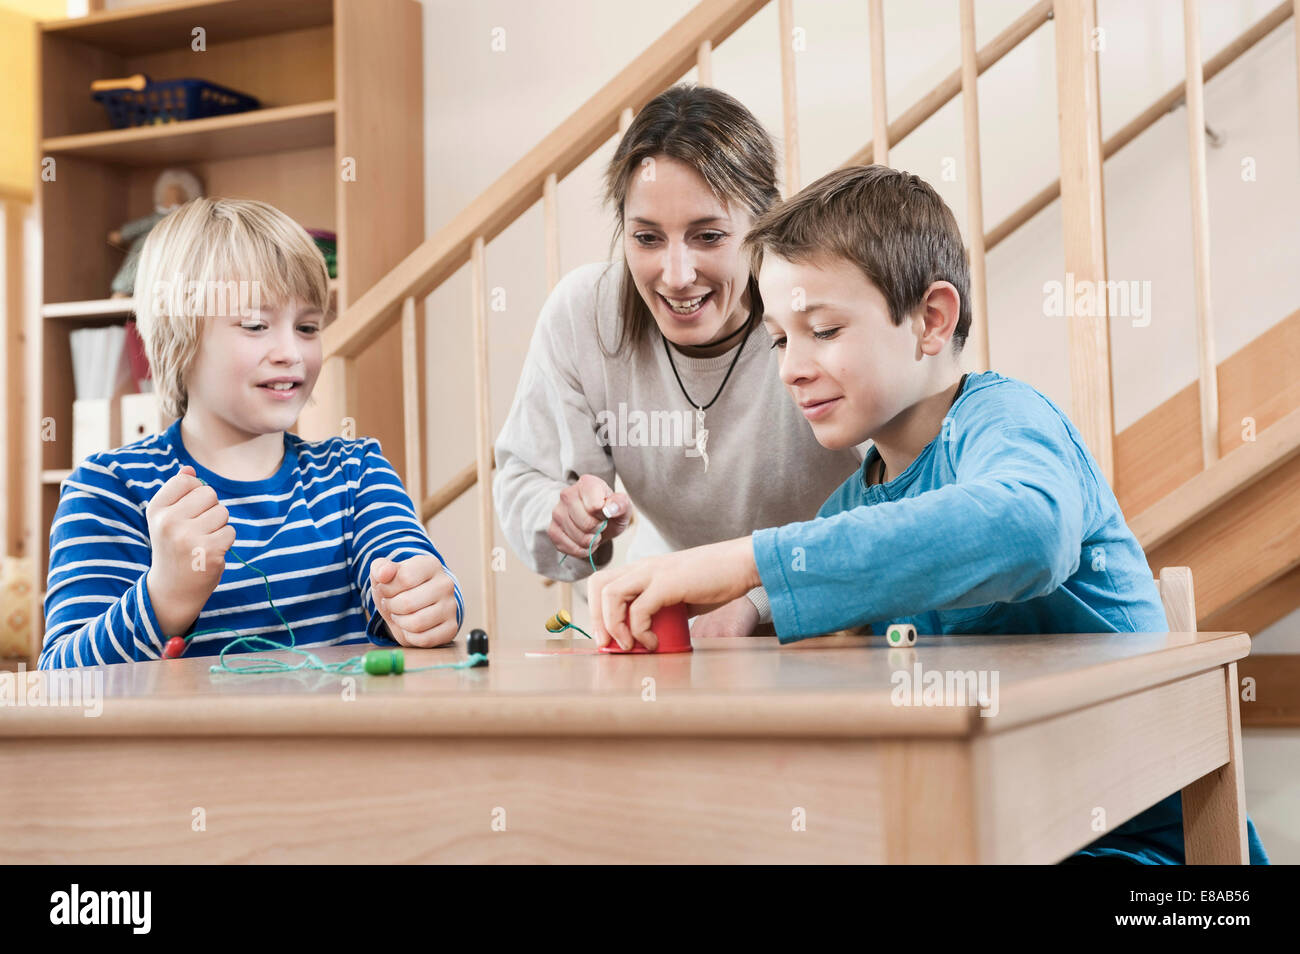 Portrait of two playing boys and female childcare assistant Stock Photo